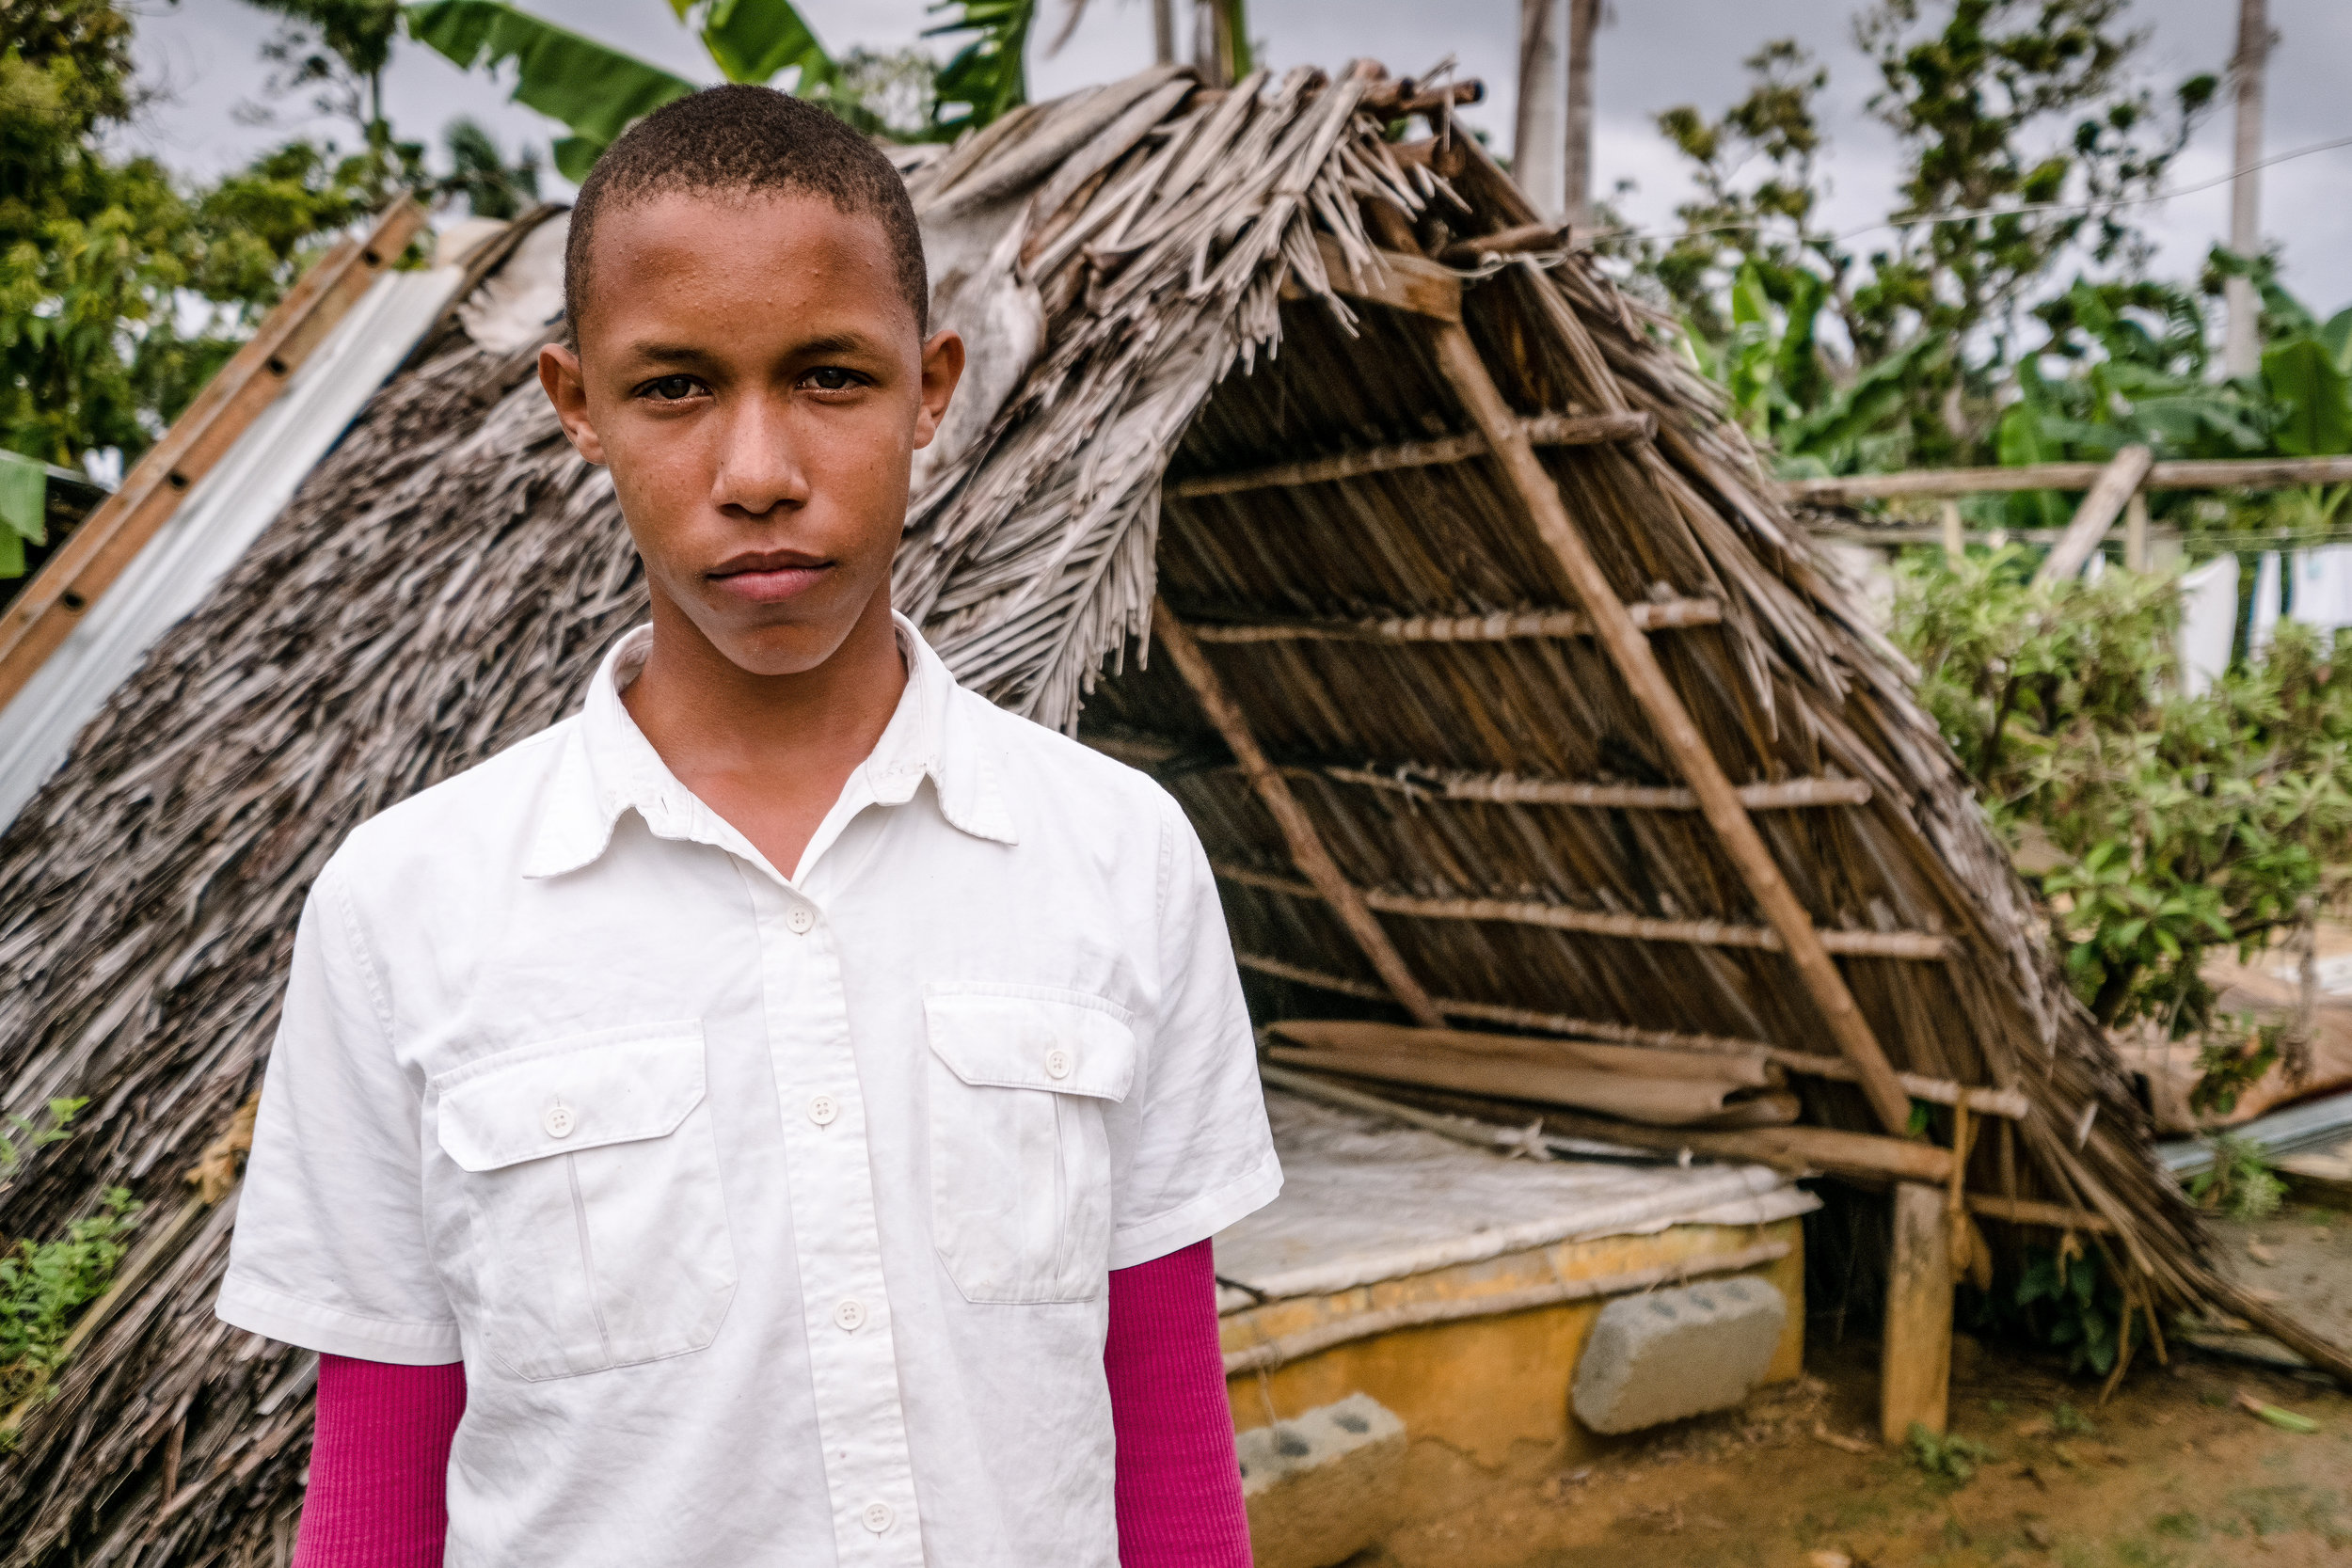 Eliobanis is 15 years old, Deaf and lives in the countryside of Baracoa with his mother and sister. He would like to work because his Dad is in Jail. He hopes someday to work in a bakery.